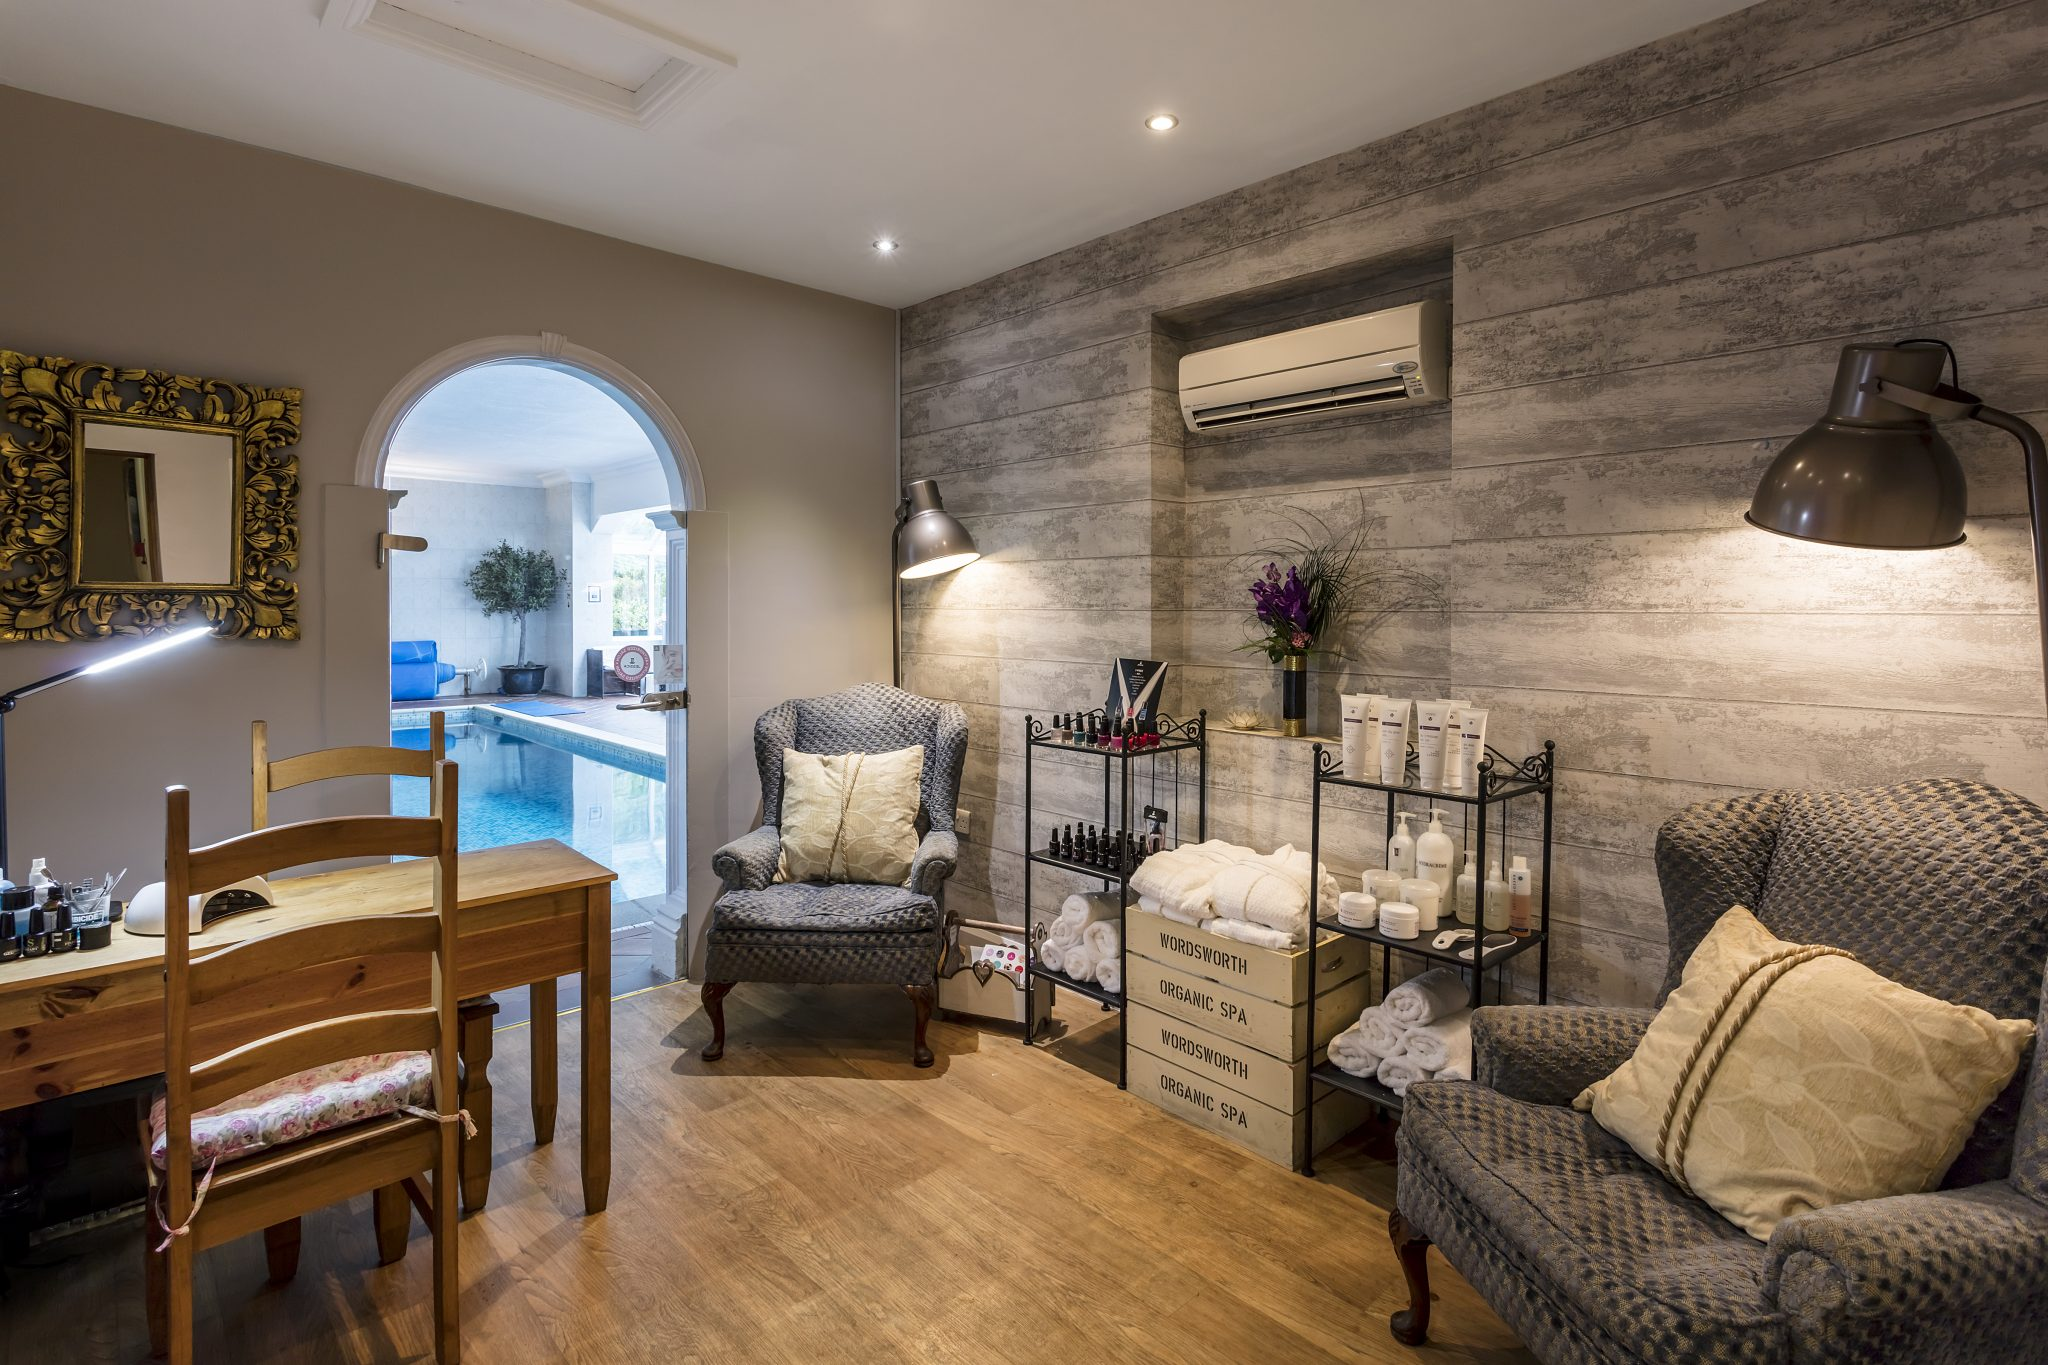 Spa at The Wordsworth Hotel & Spa, Grasmere, Lake District